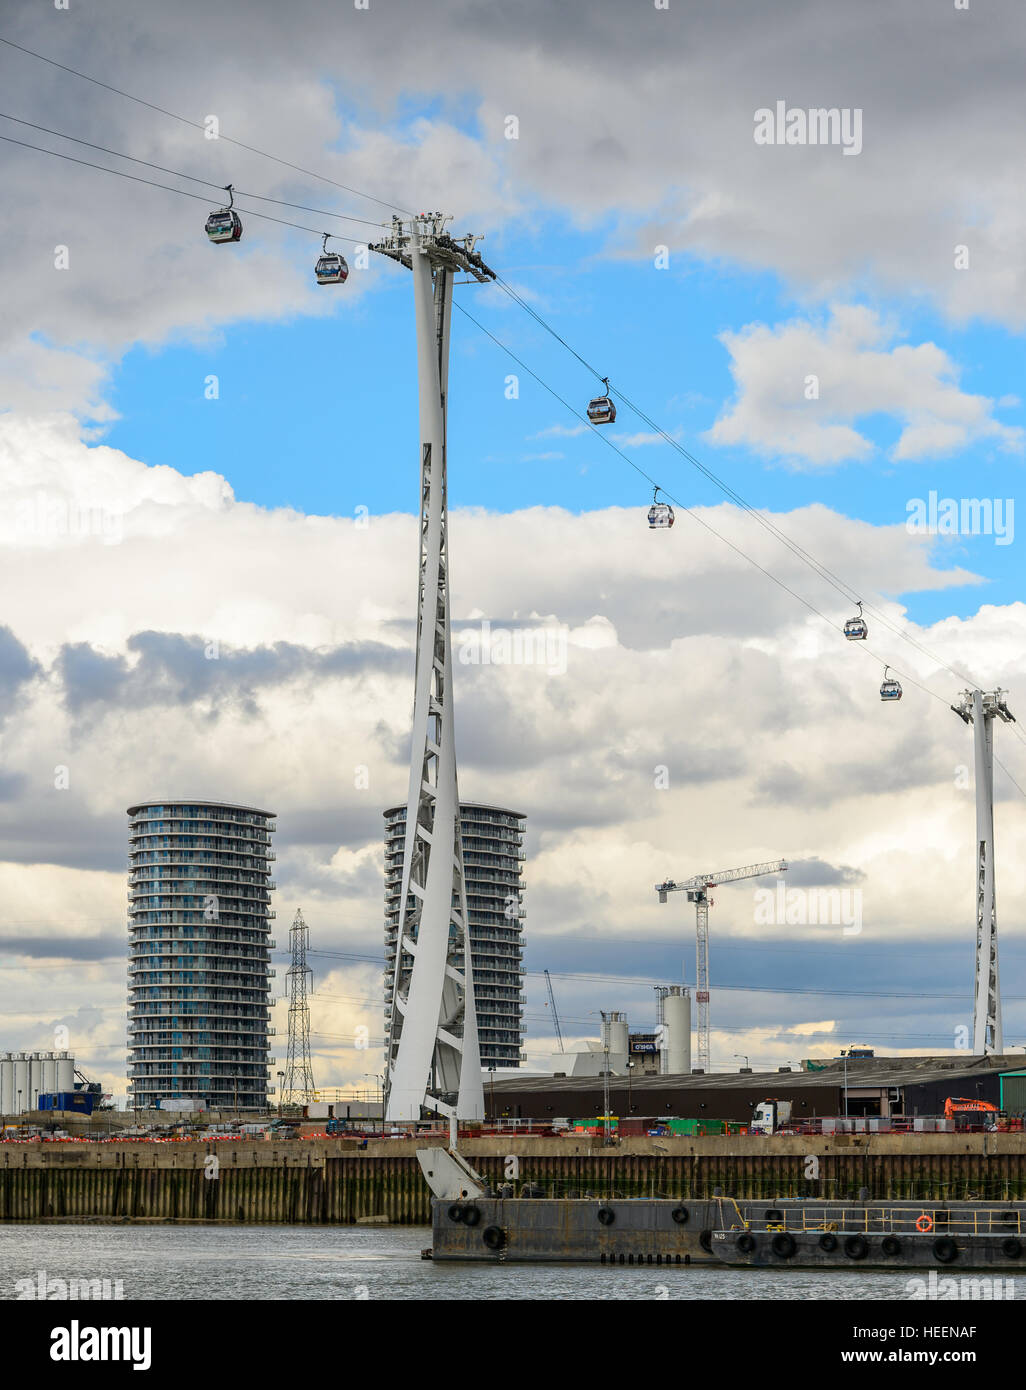 One of the pylons of the Emirates Air Line (cable car, cablecar) across the River Thames in London. Stock Photo